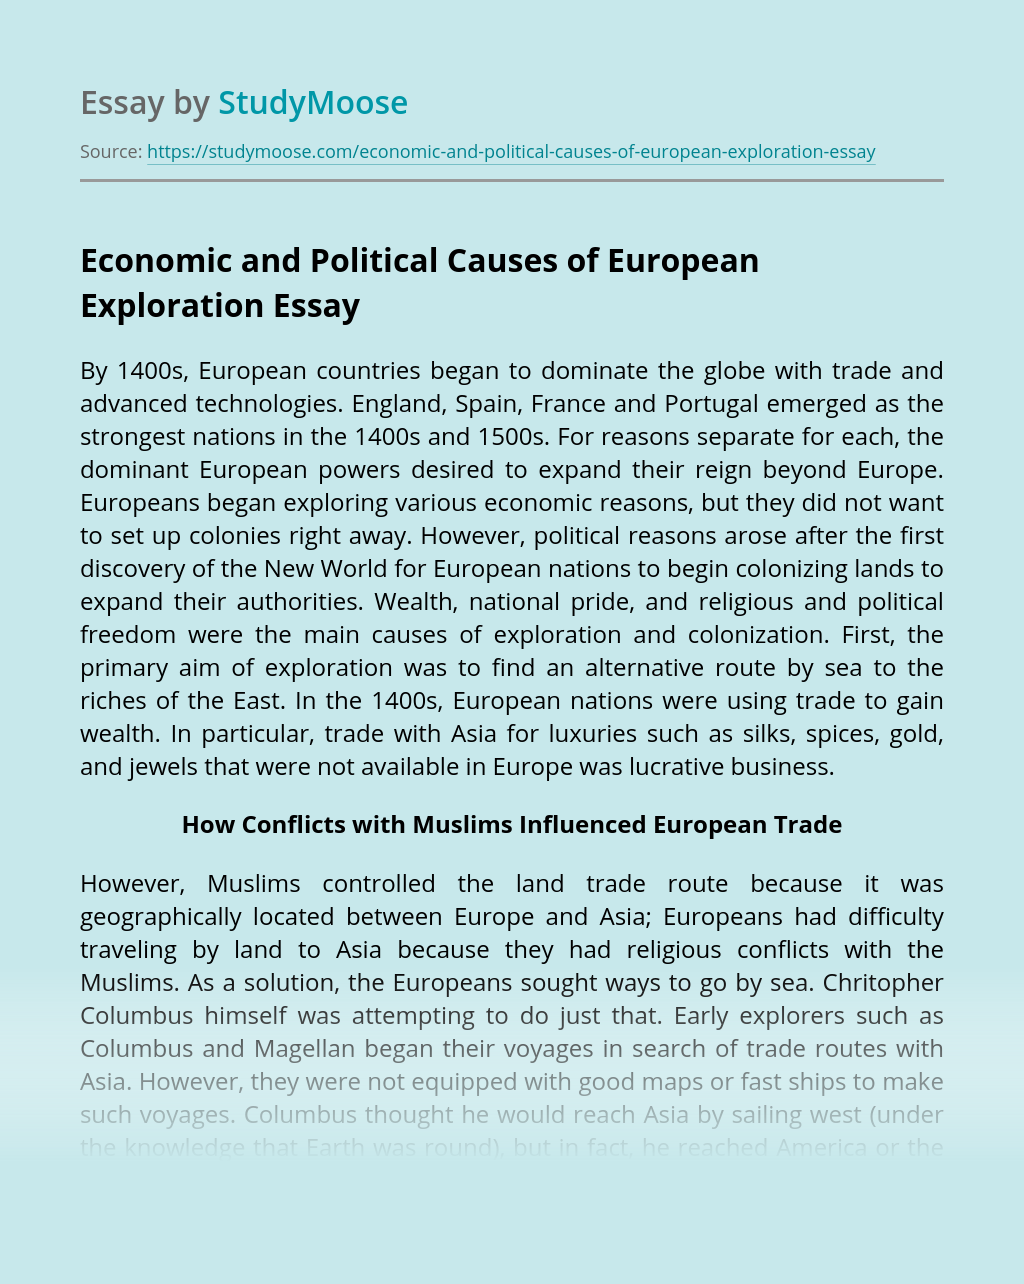 Economic and Political Causes of European Exploration